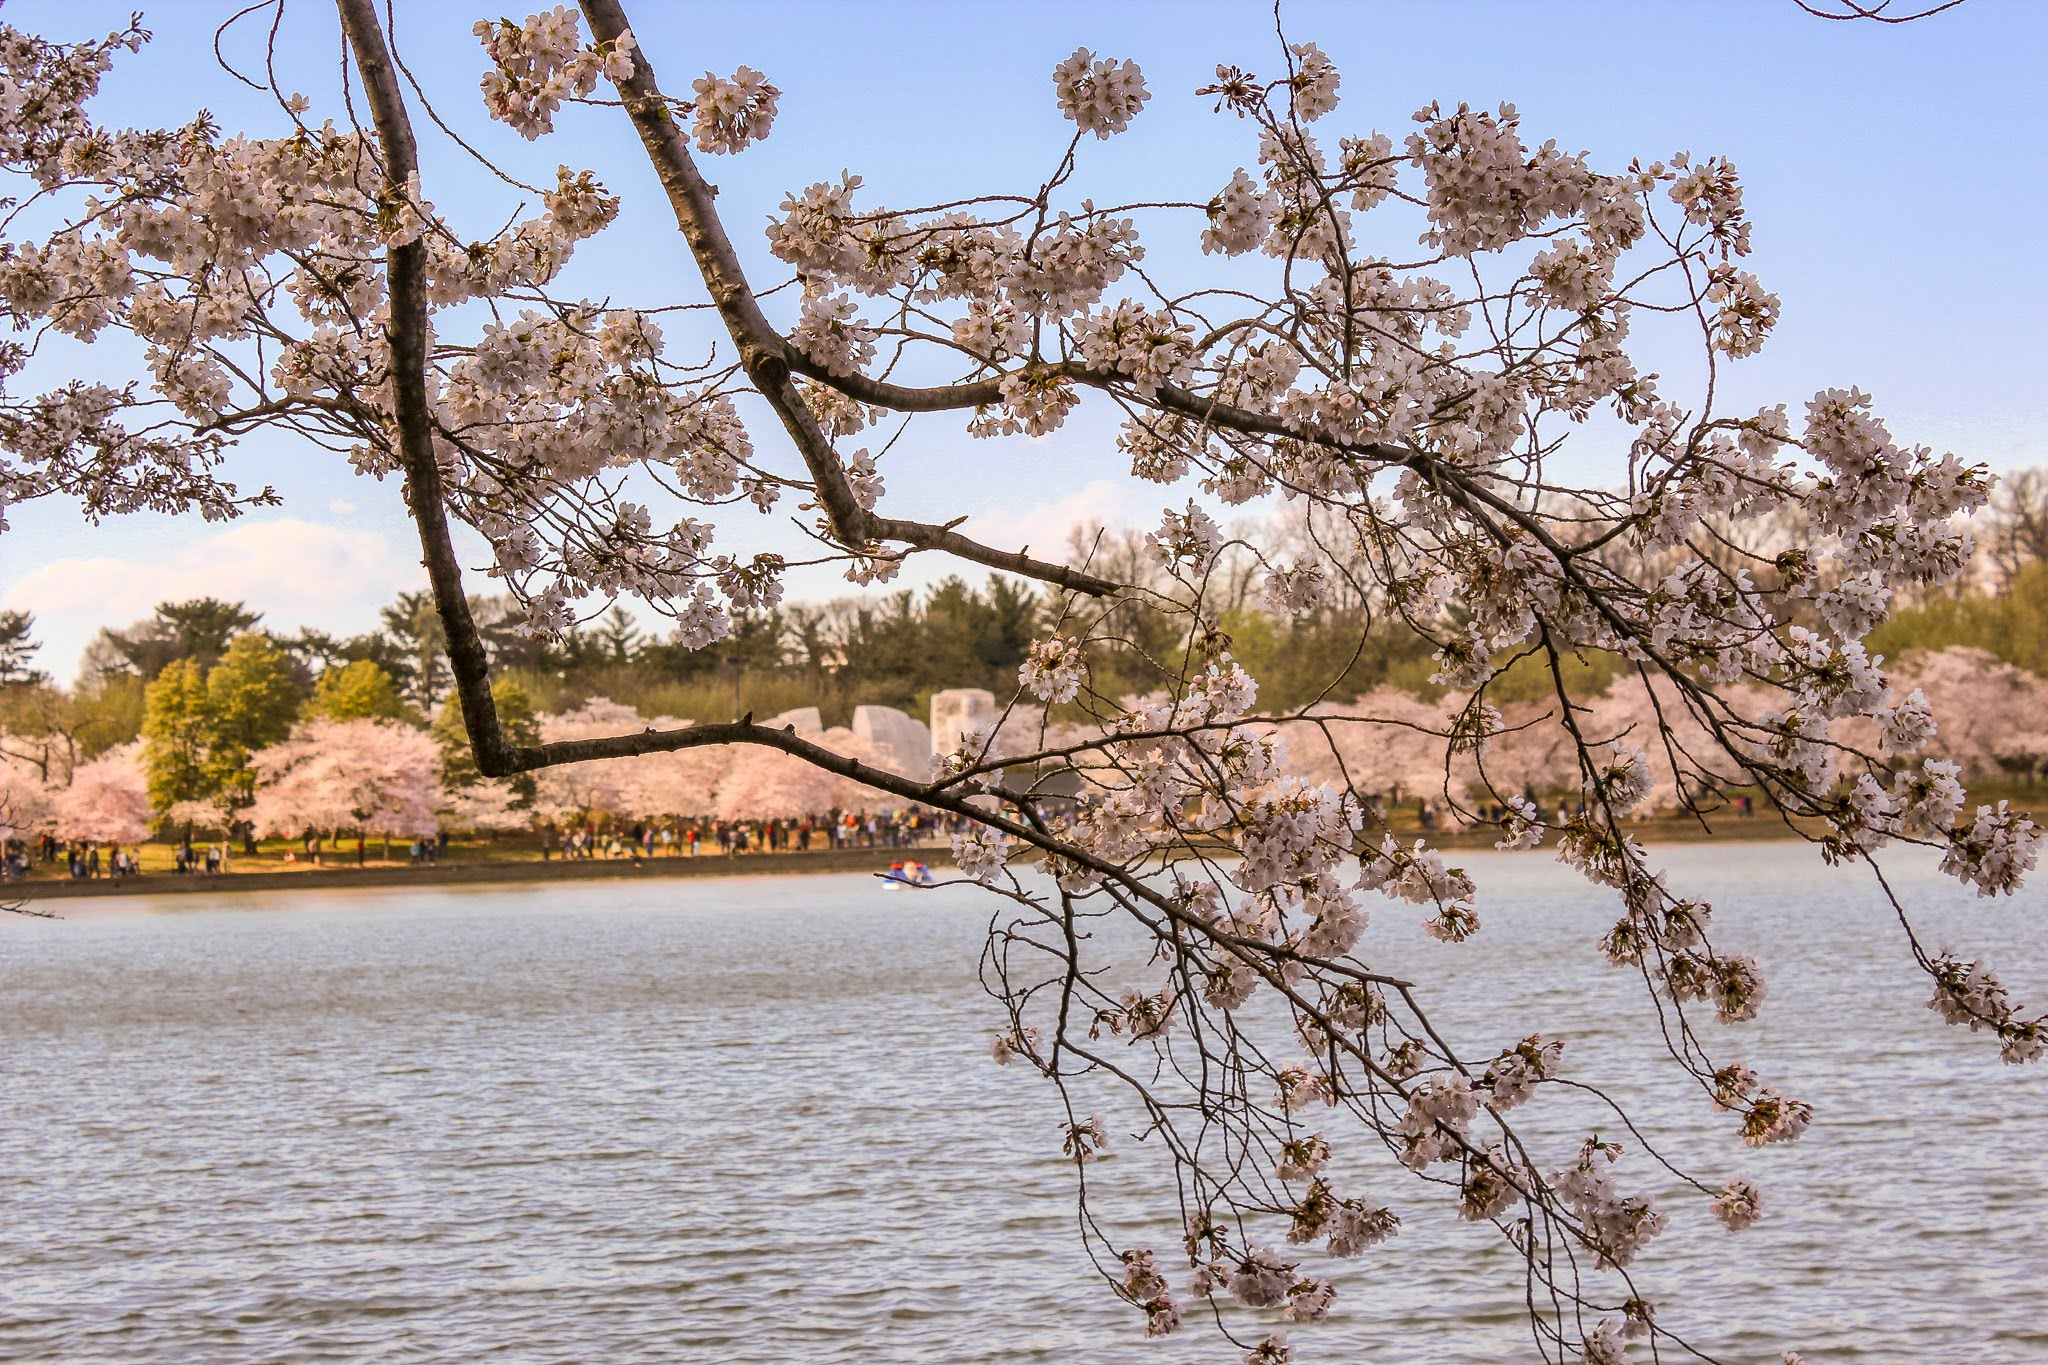 Cherry Blossoms in Washington, DC | Doctor Anni Blog | where to find cherry blossoms in washington dc, peak bloom, washington dc cherry blossoms